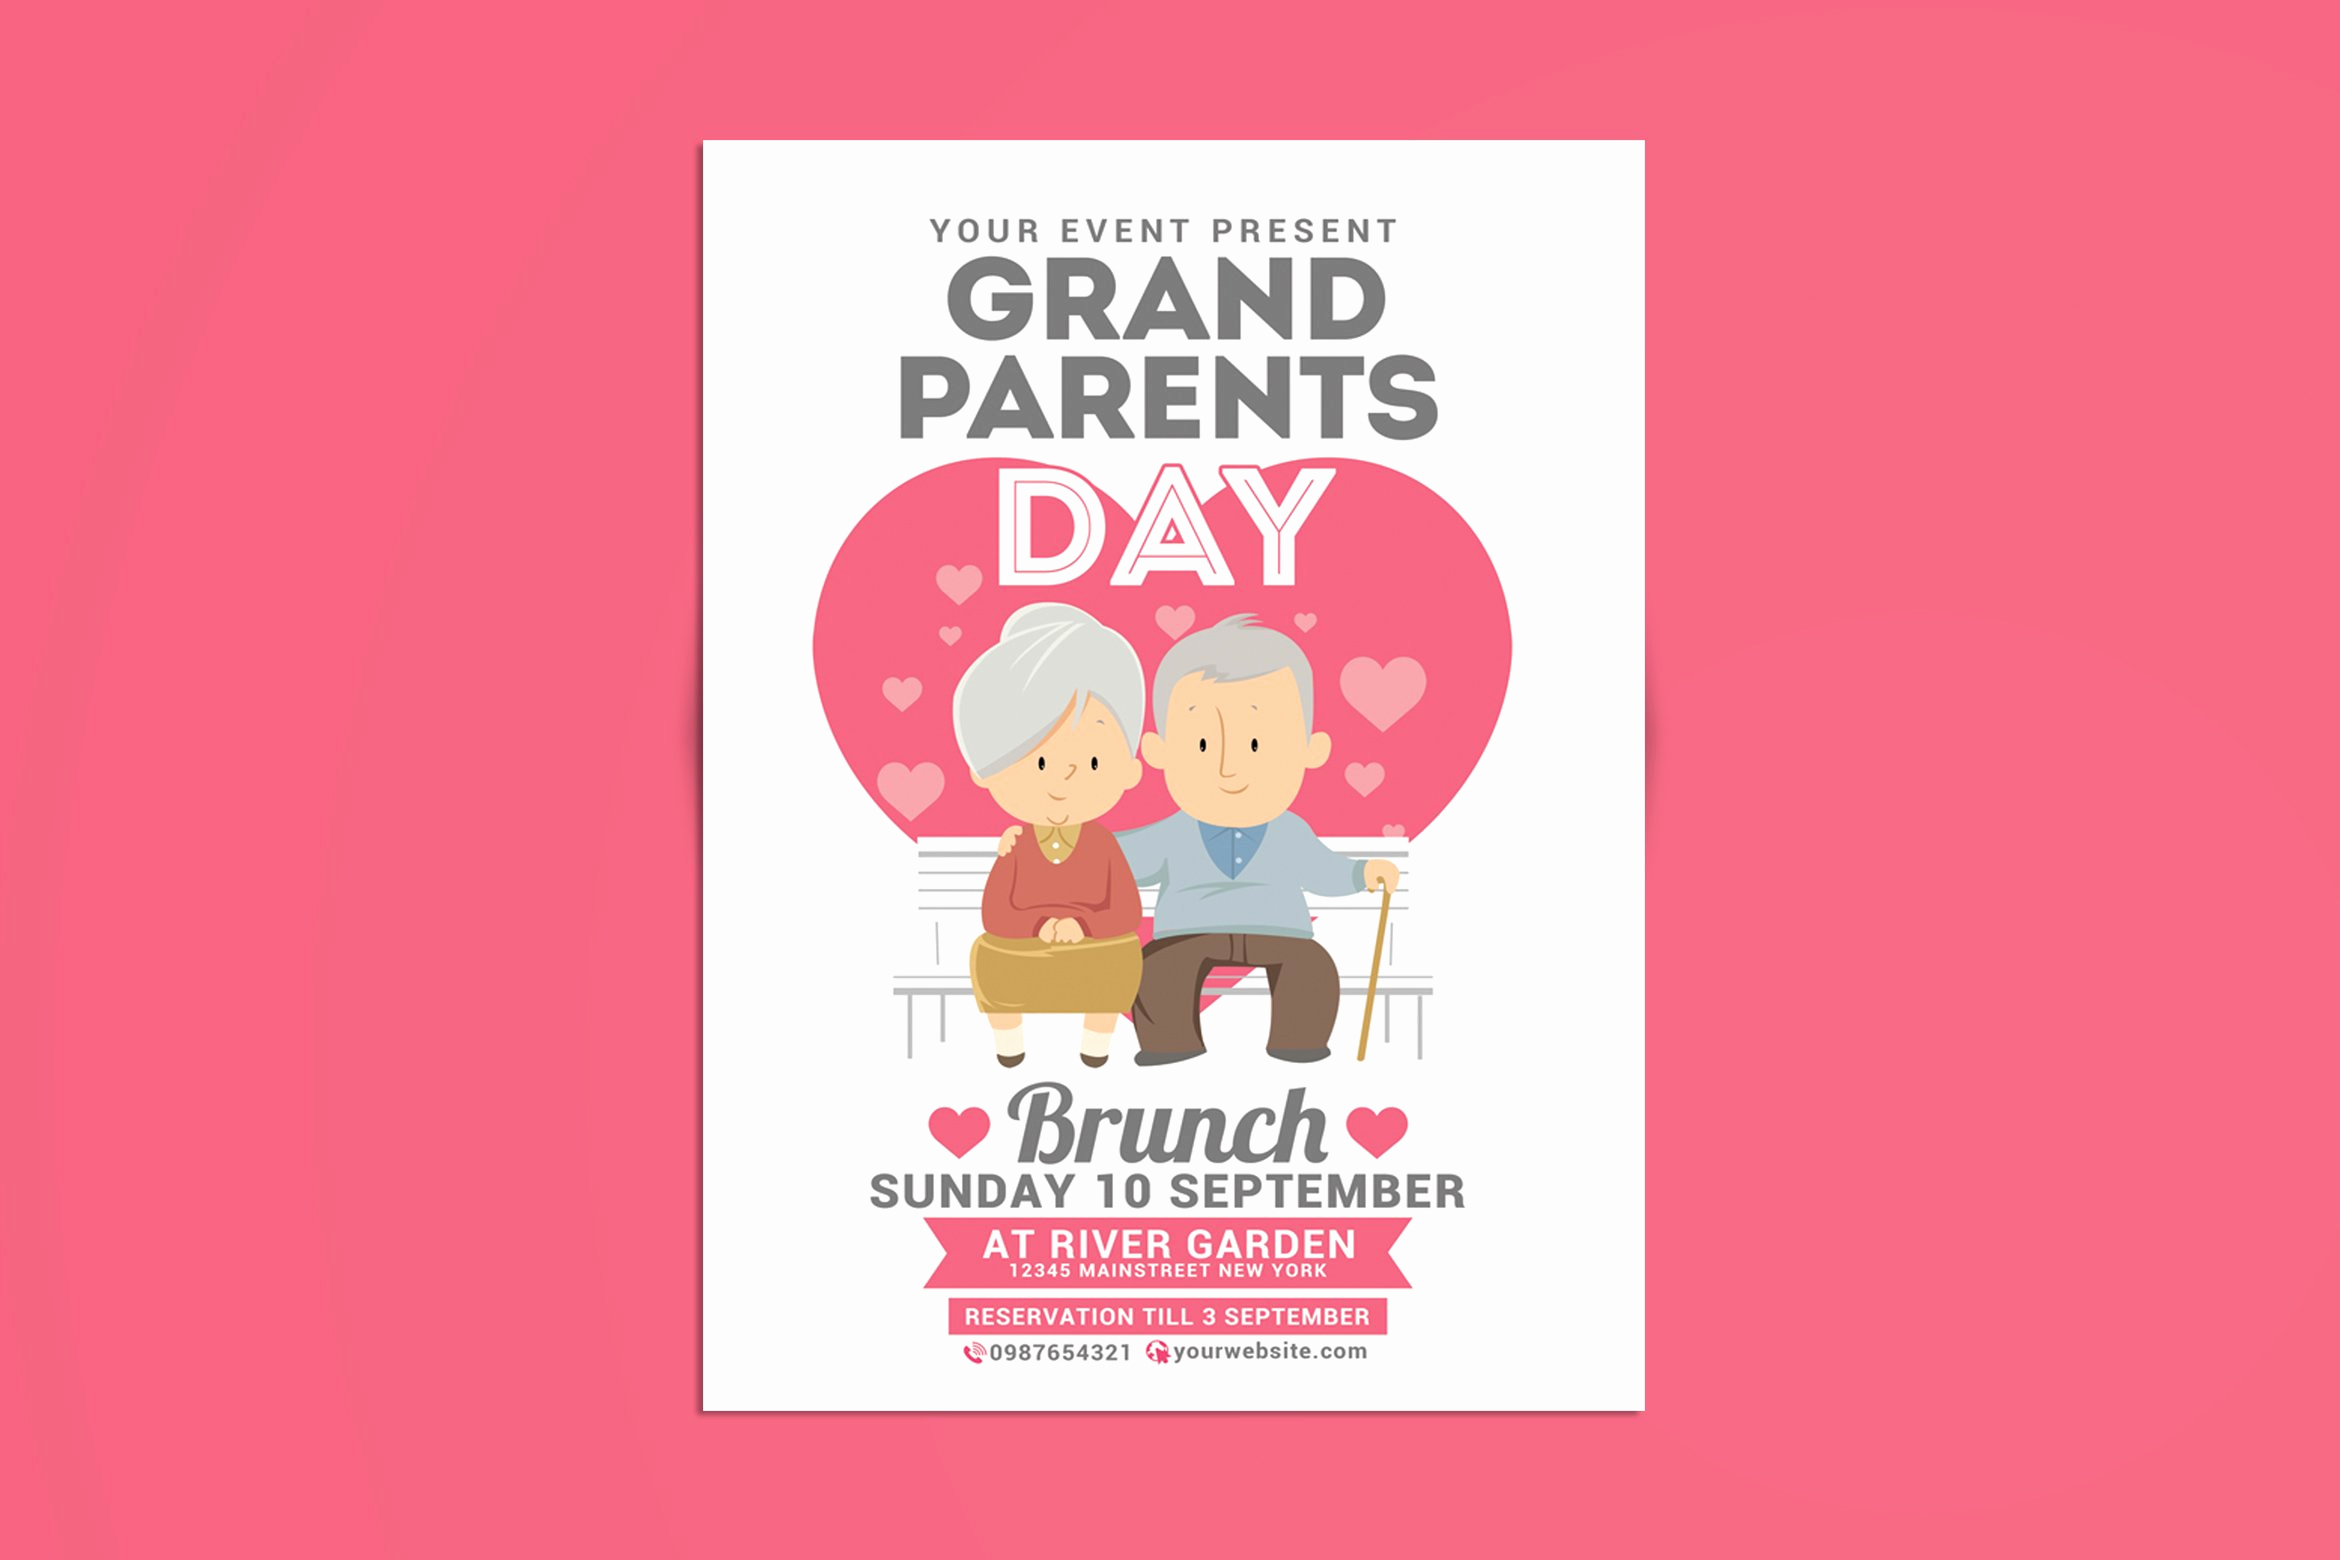 Grandparents Day Invitation Template Awesome Grandparents Day Brunch Flyer Templates Creative Market